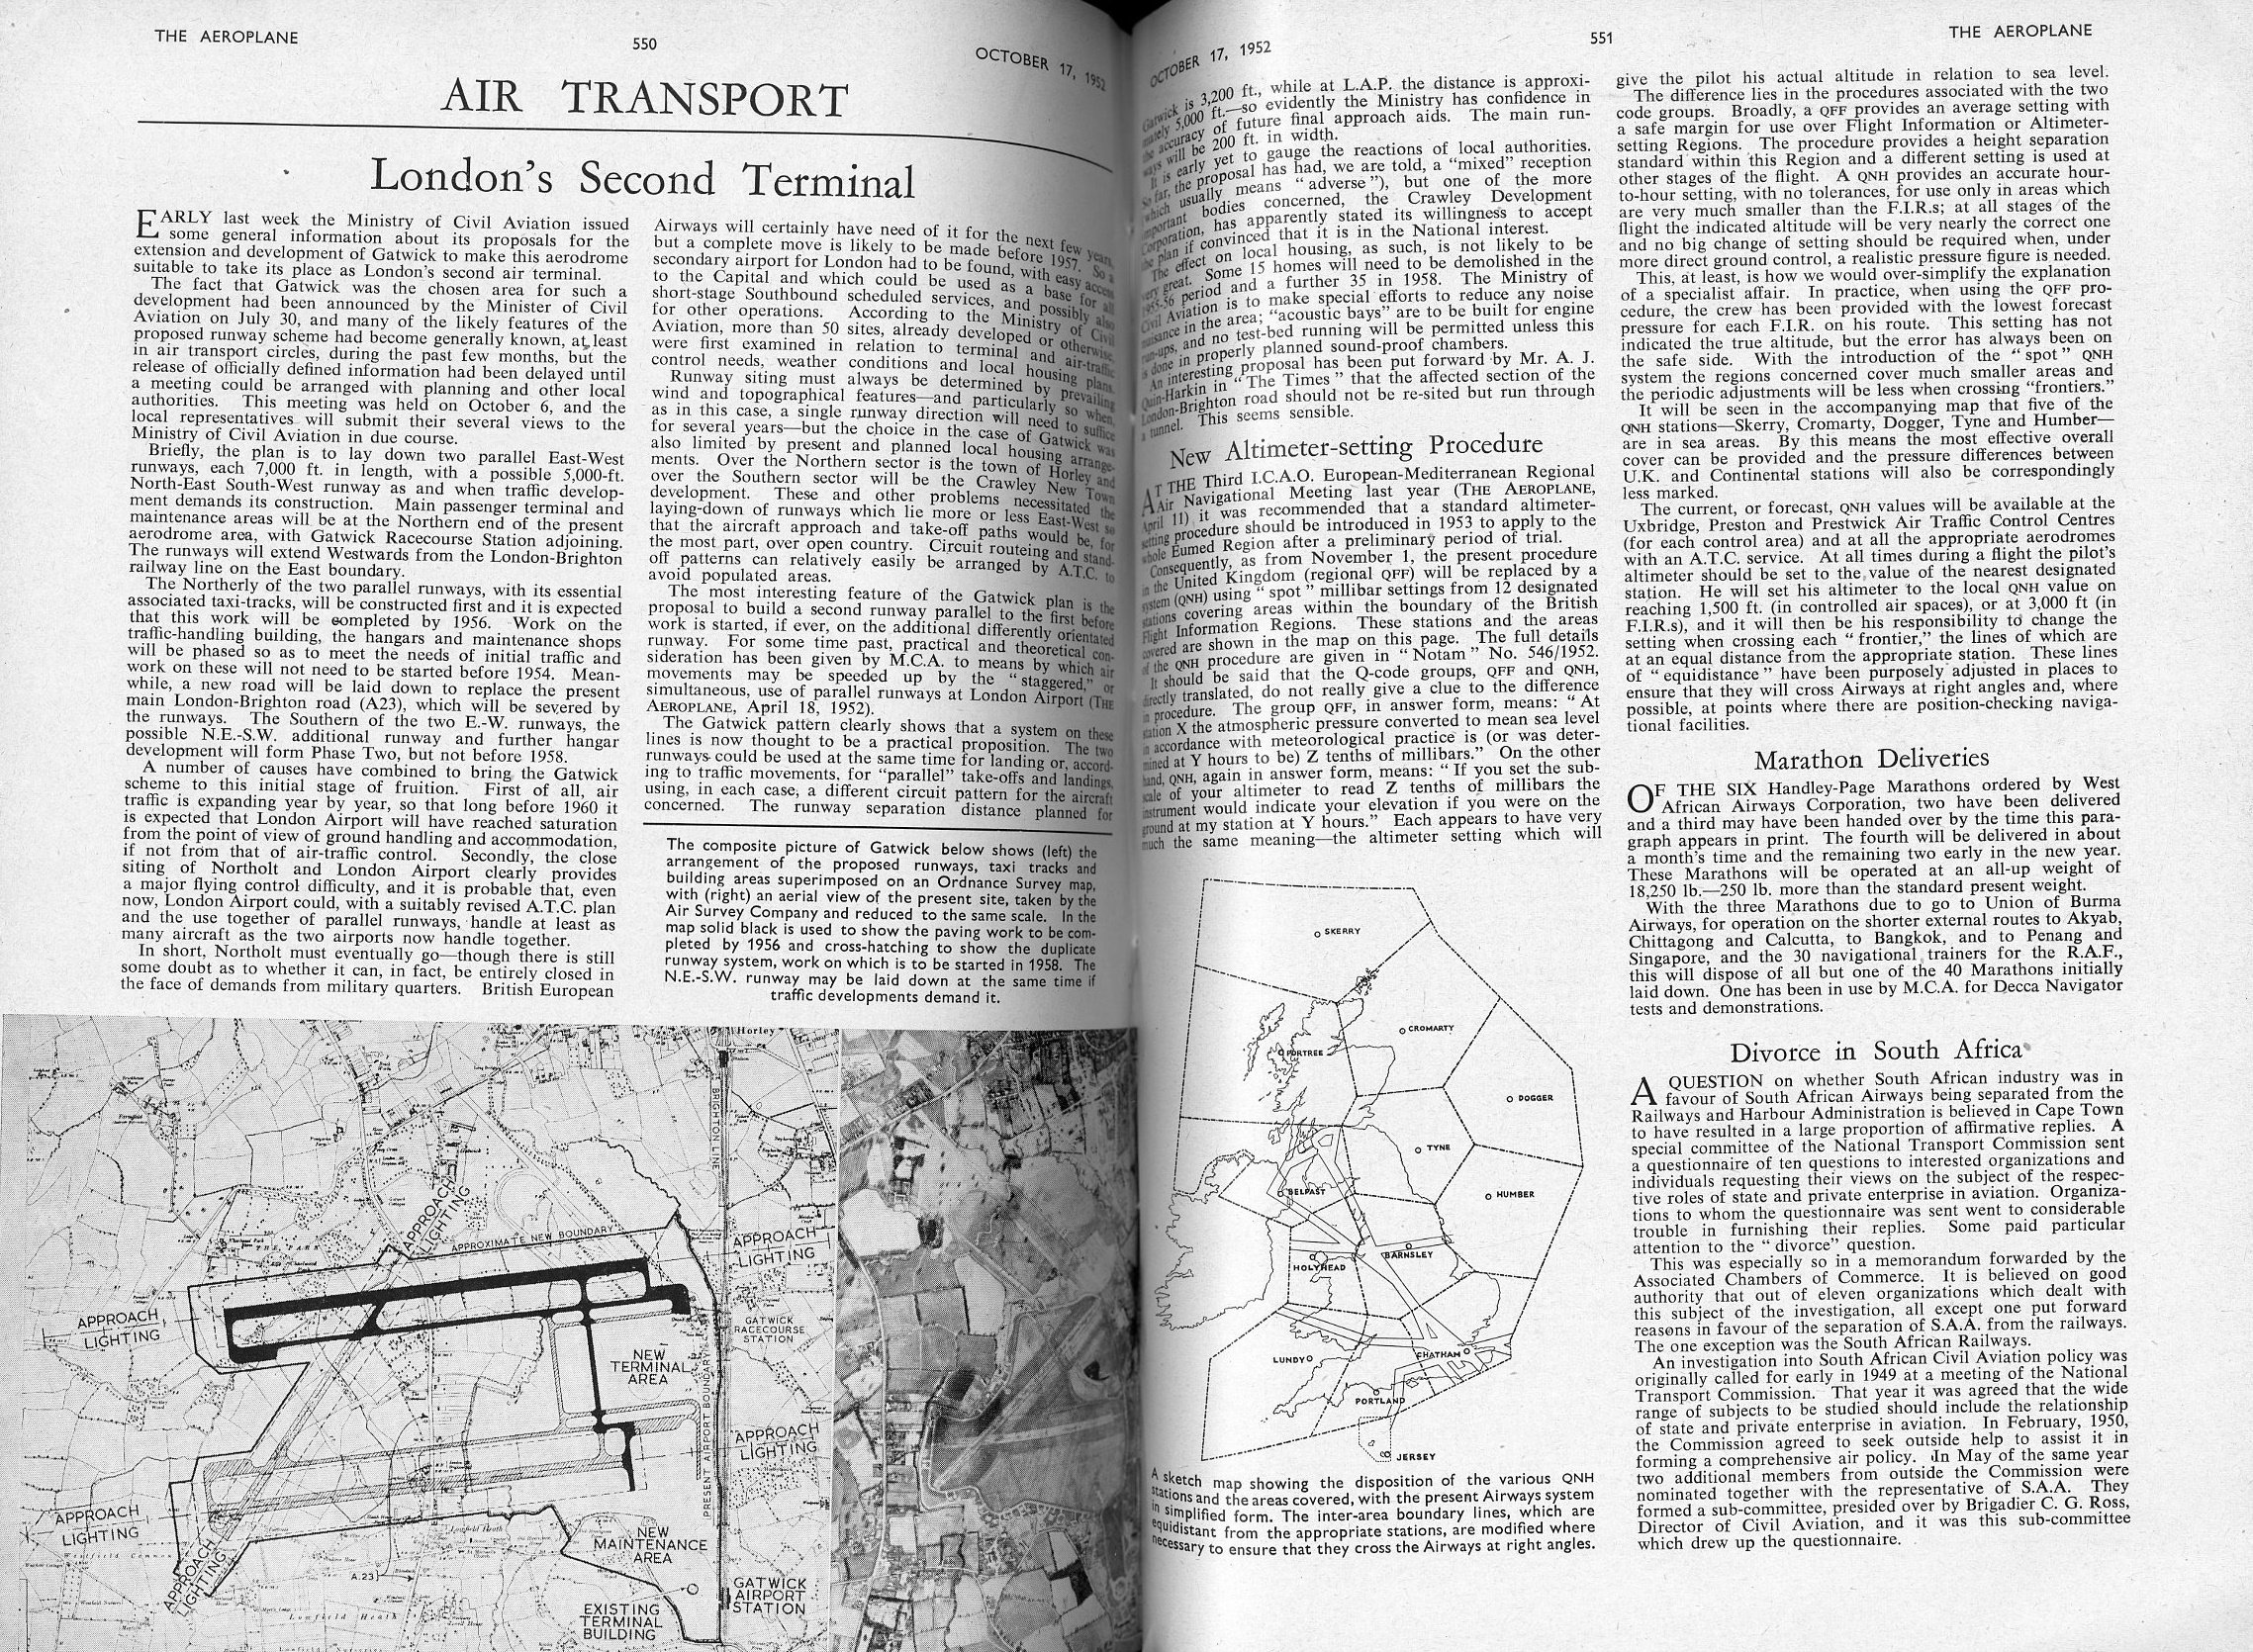 Overview of pages from the magazine.